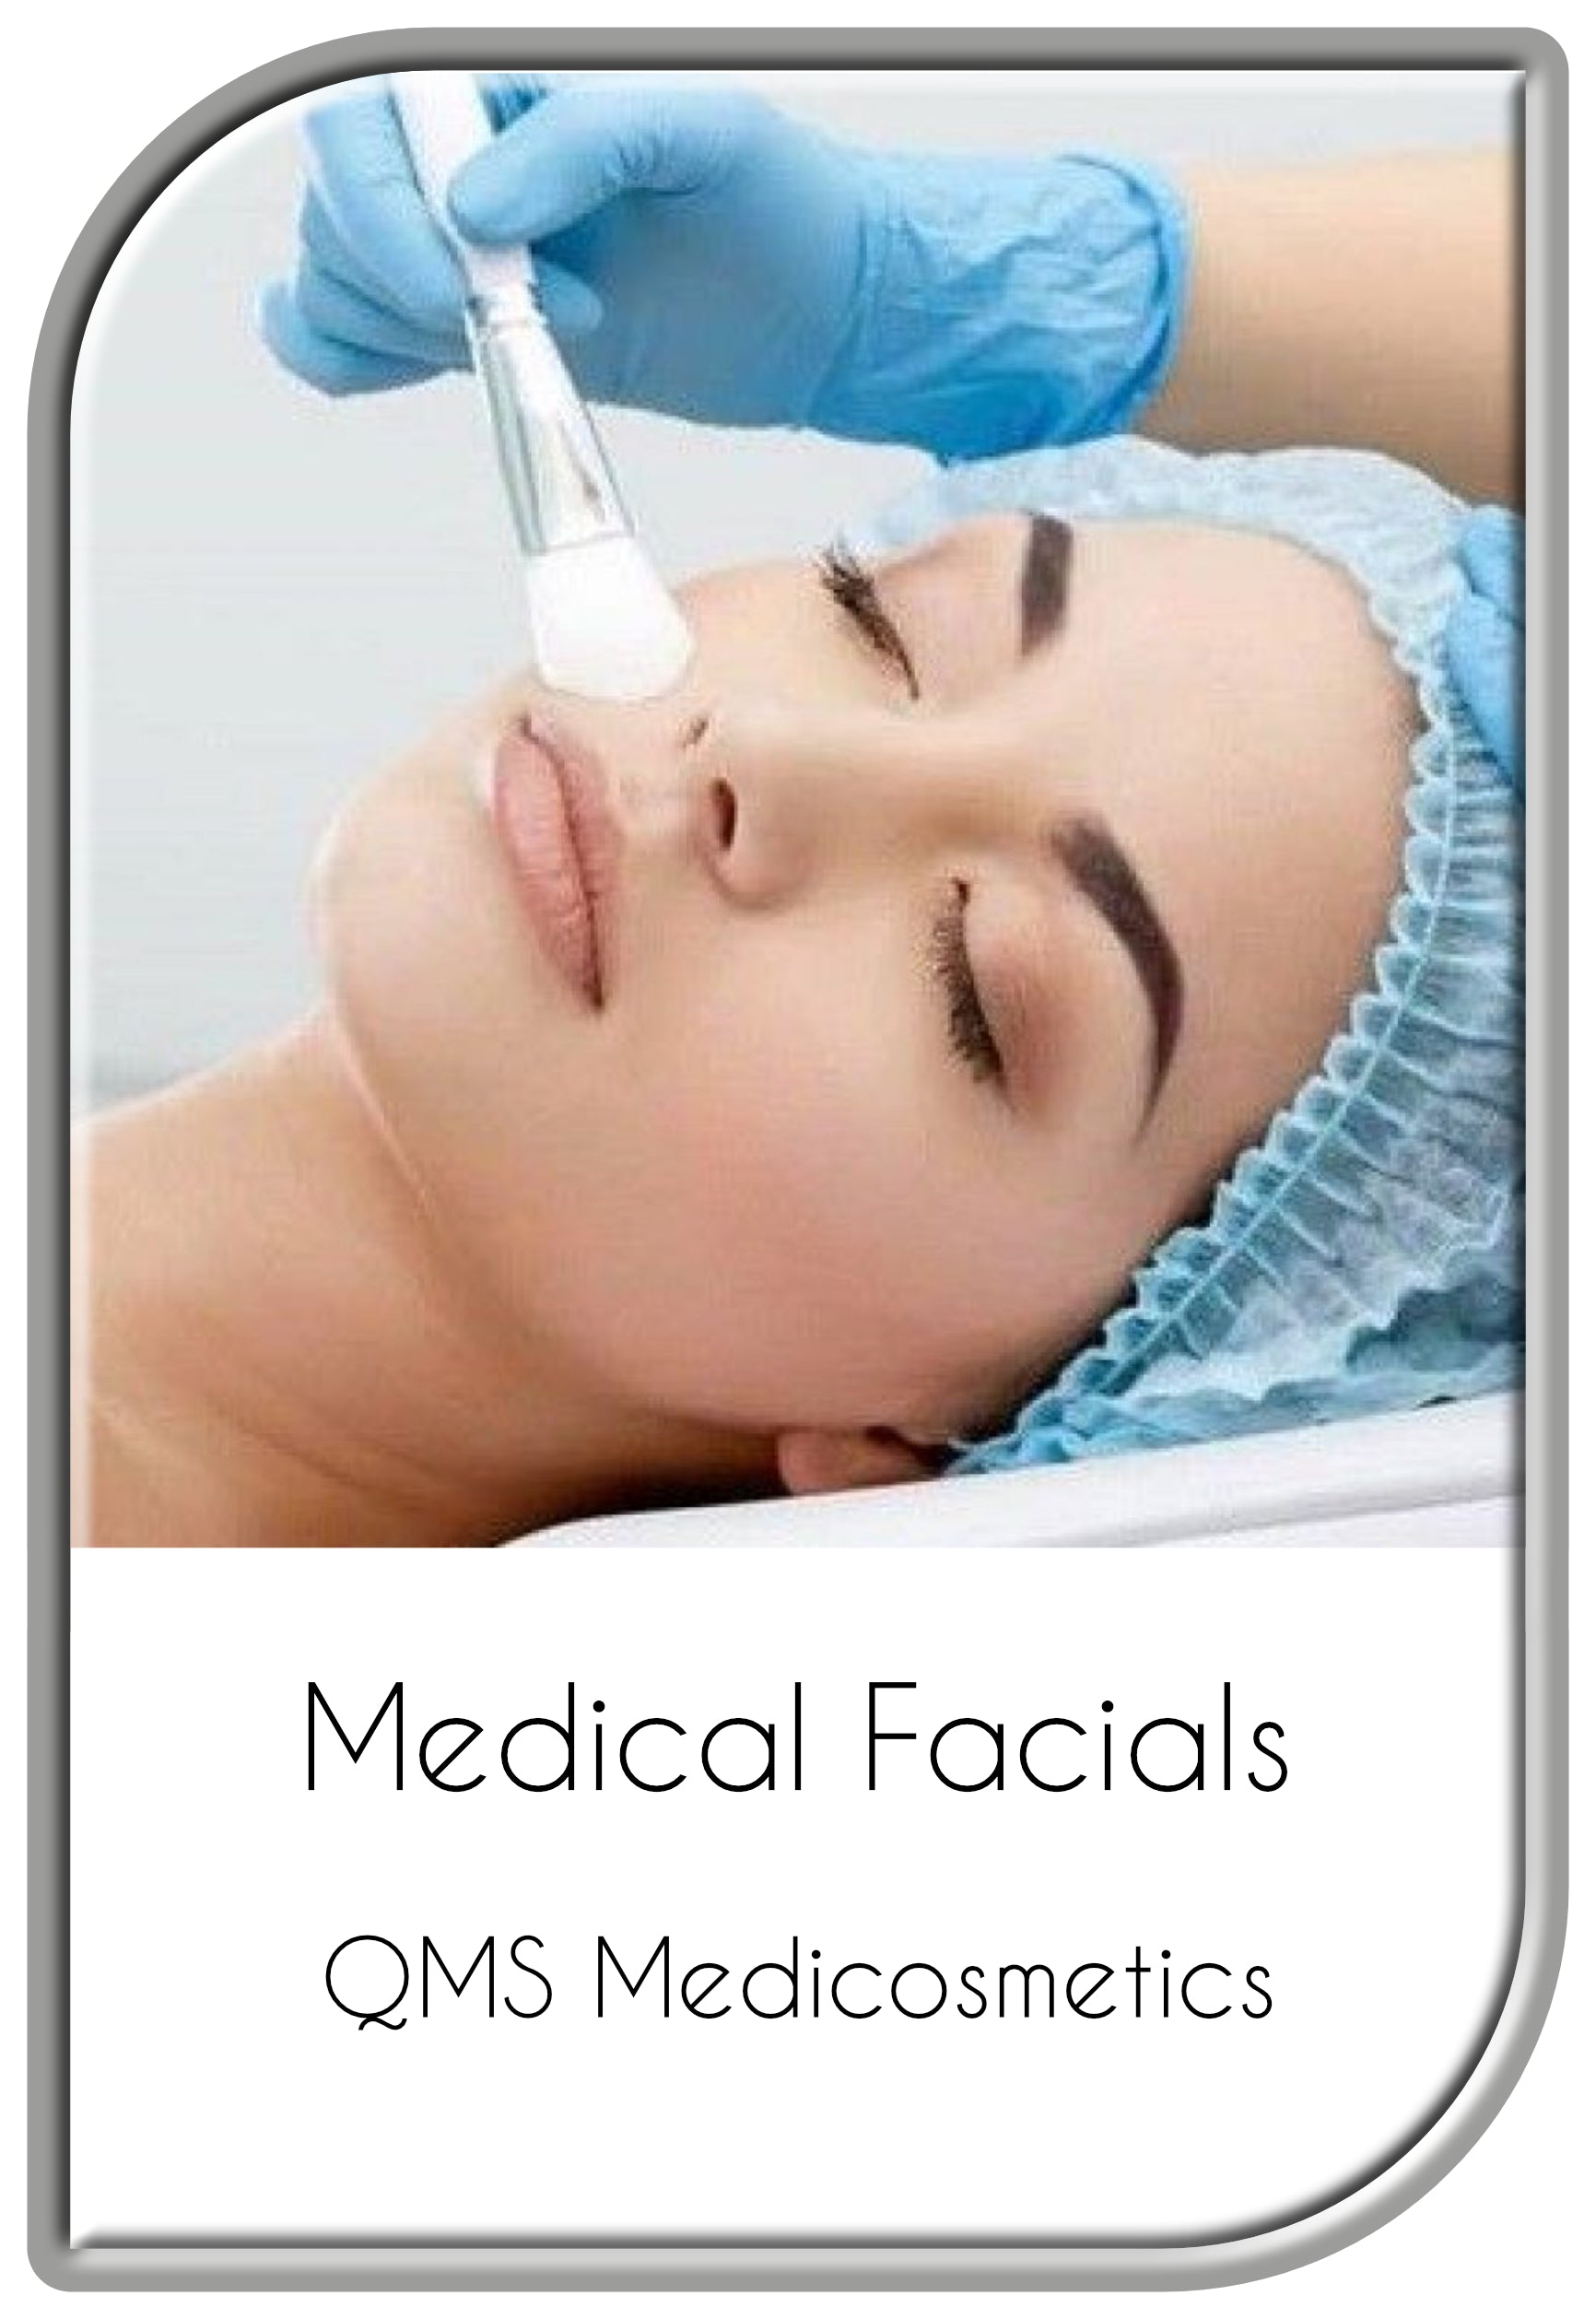 Facials by QMS Medicosmetics